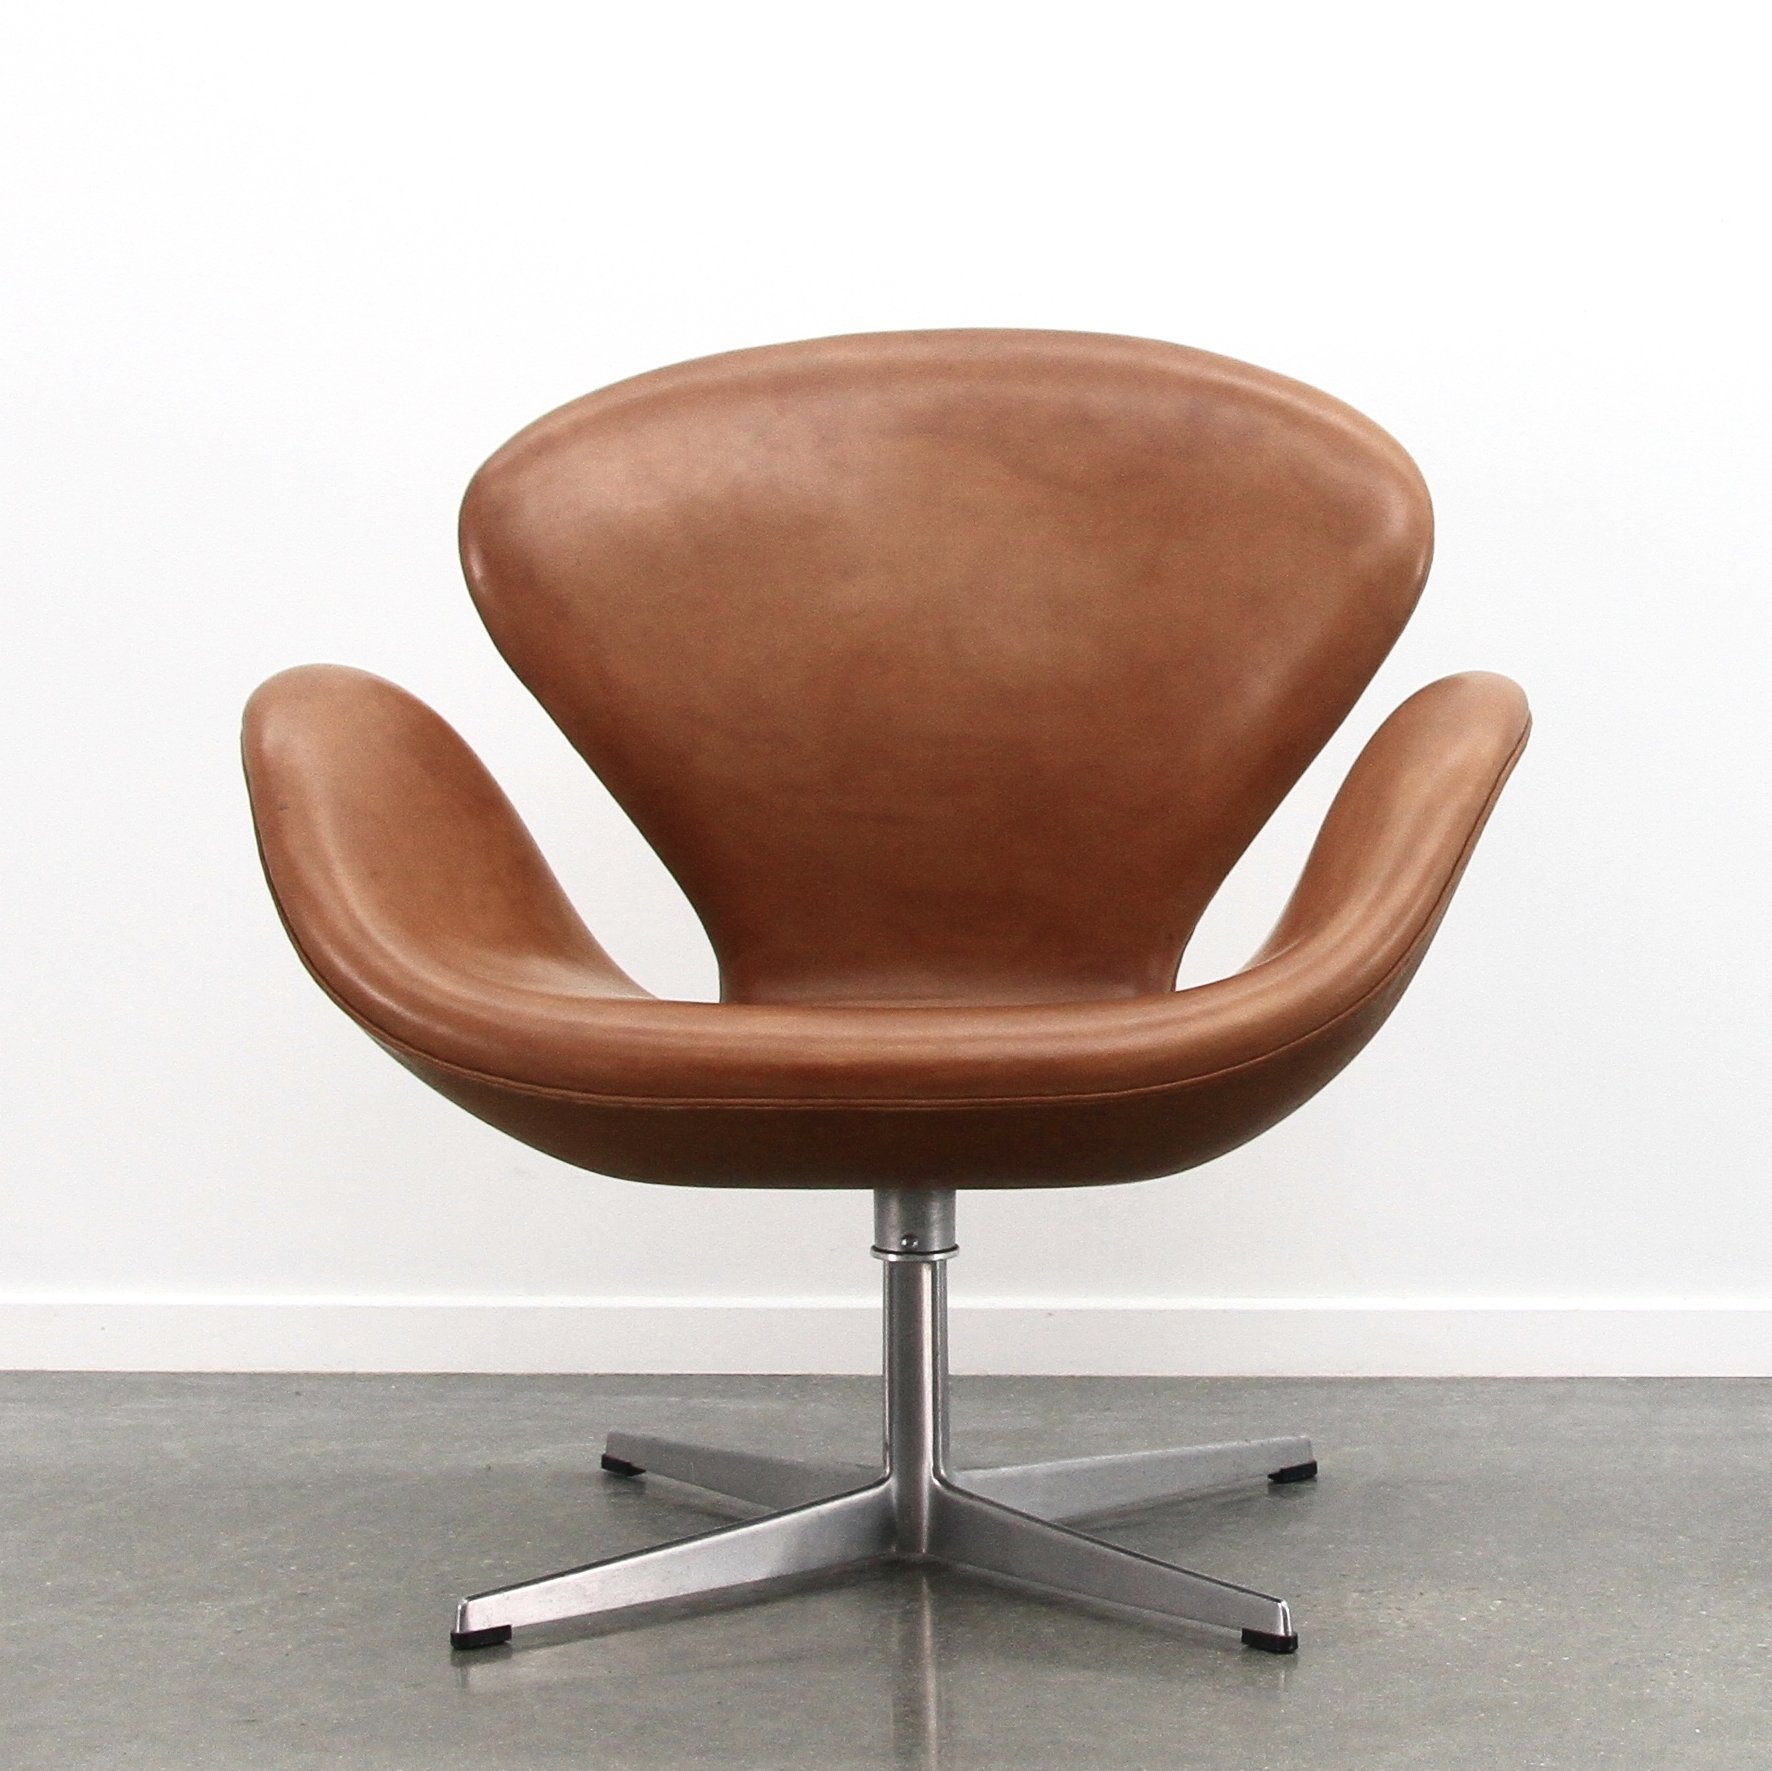 Cognac Leather Swan Chair By Arne Jacobsen For Fritz Hansen 1970s